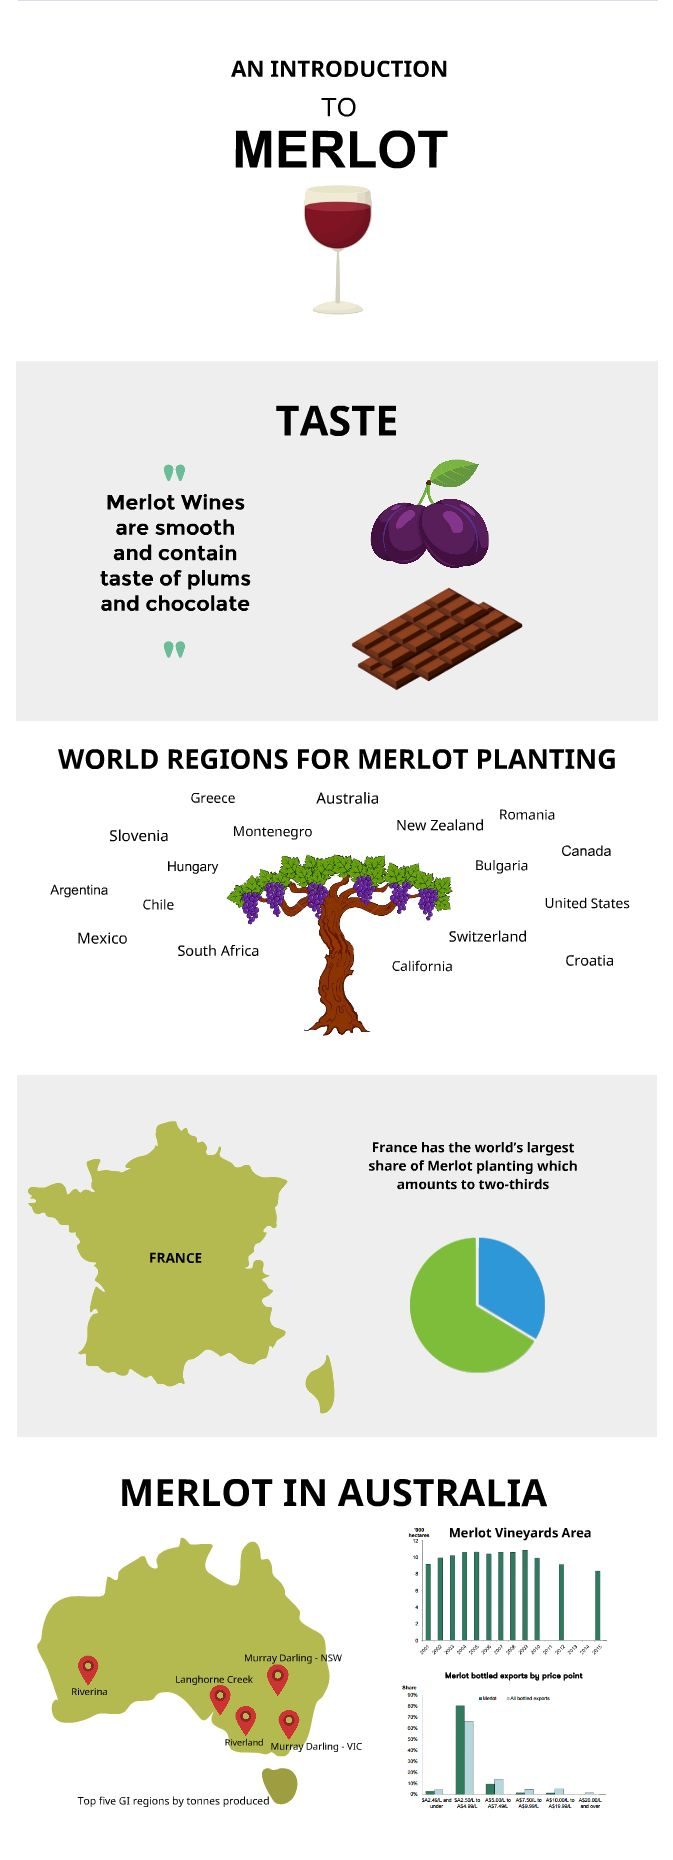 An Introduction to Merlot Grape and Merlot #Wines  #merlotwines #merlot #merlotgrape